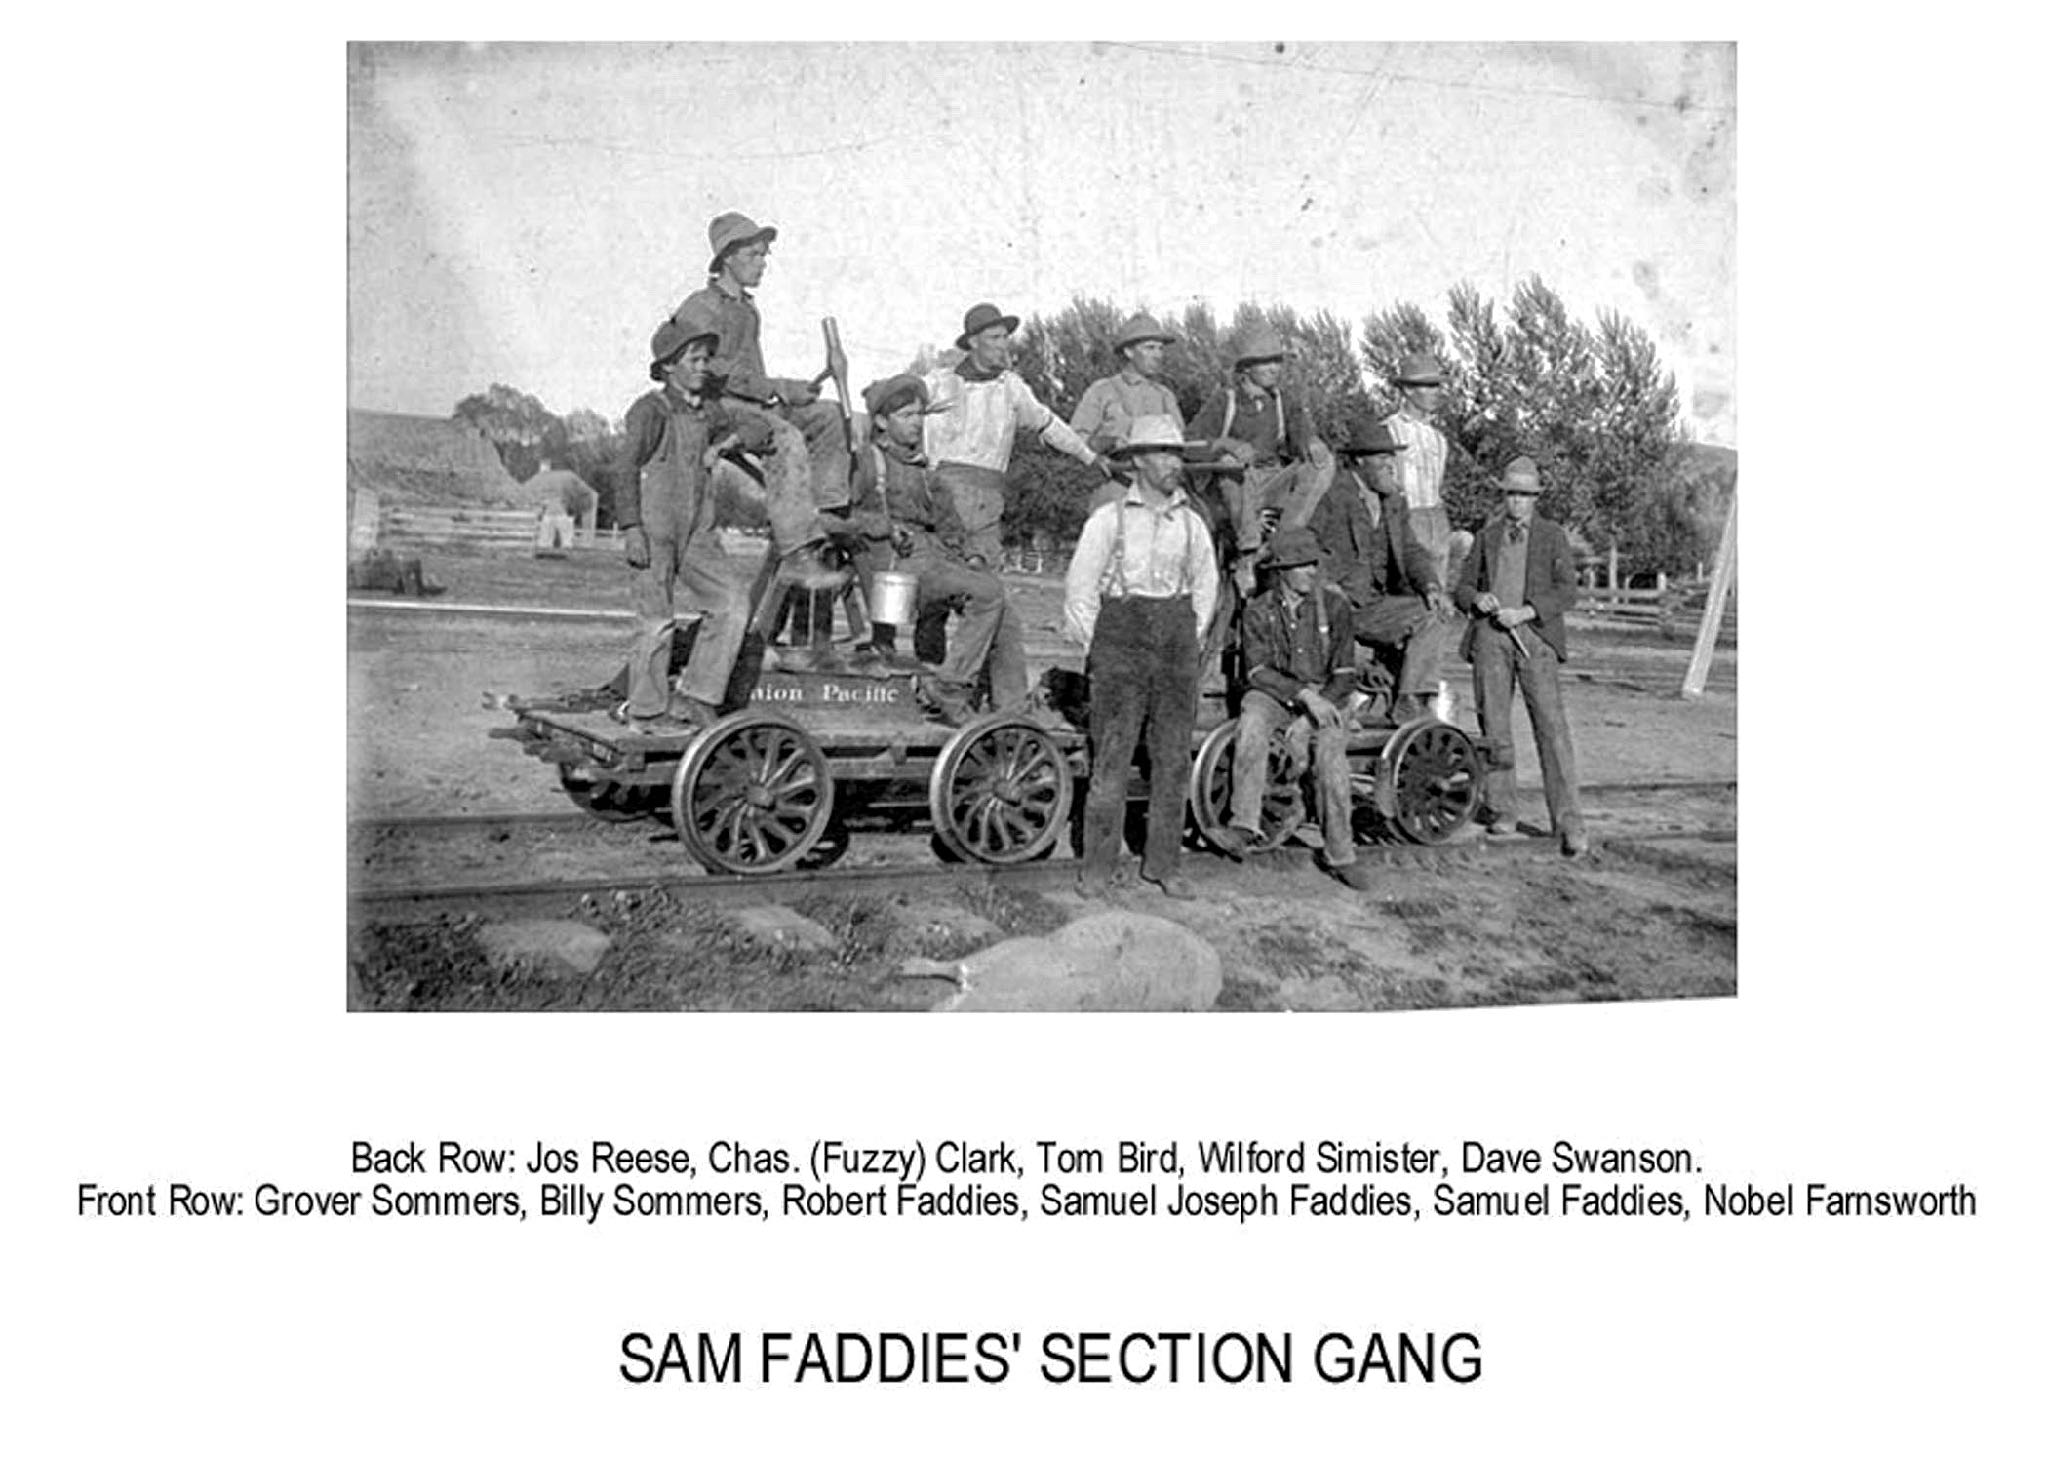 Sam Faddies gang